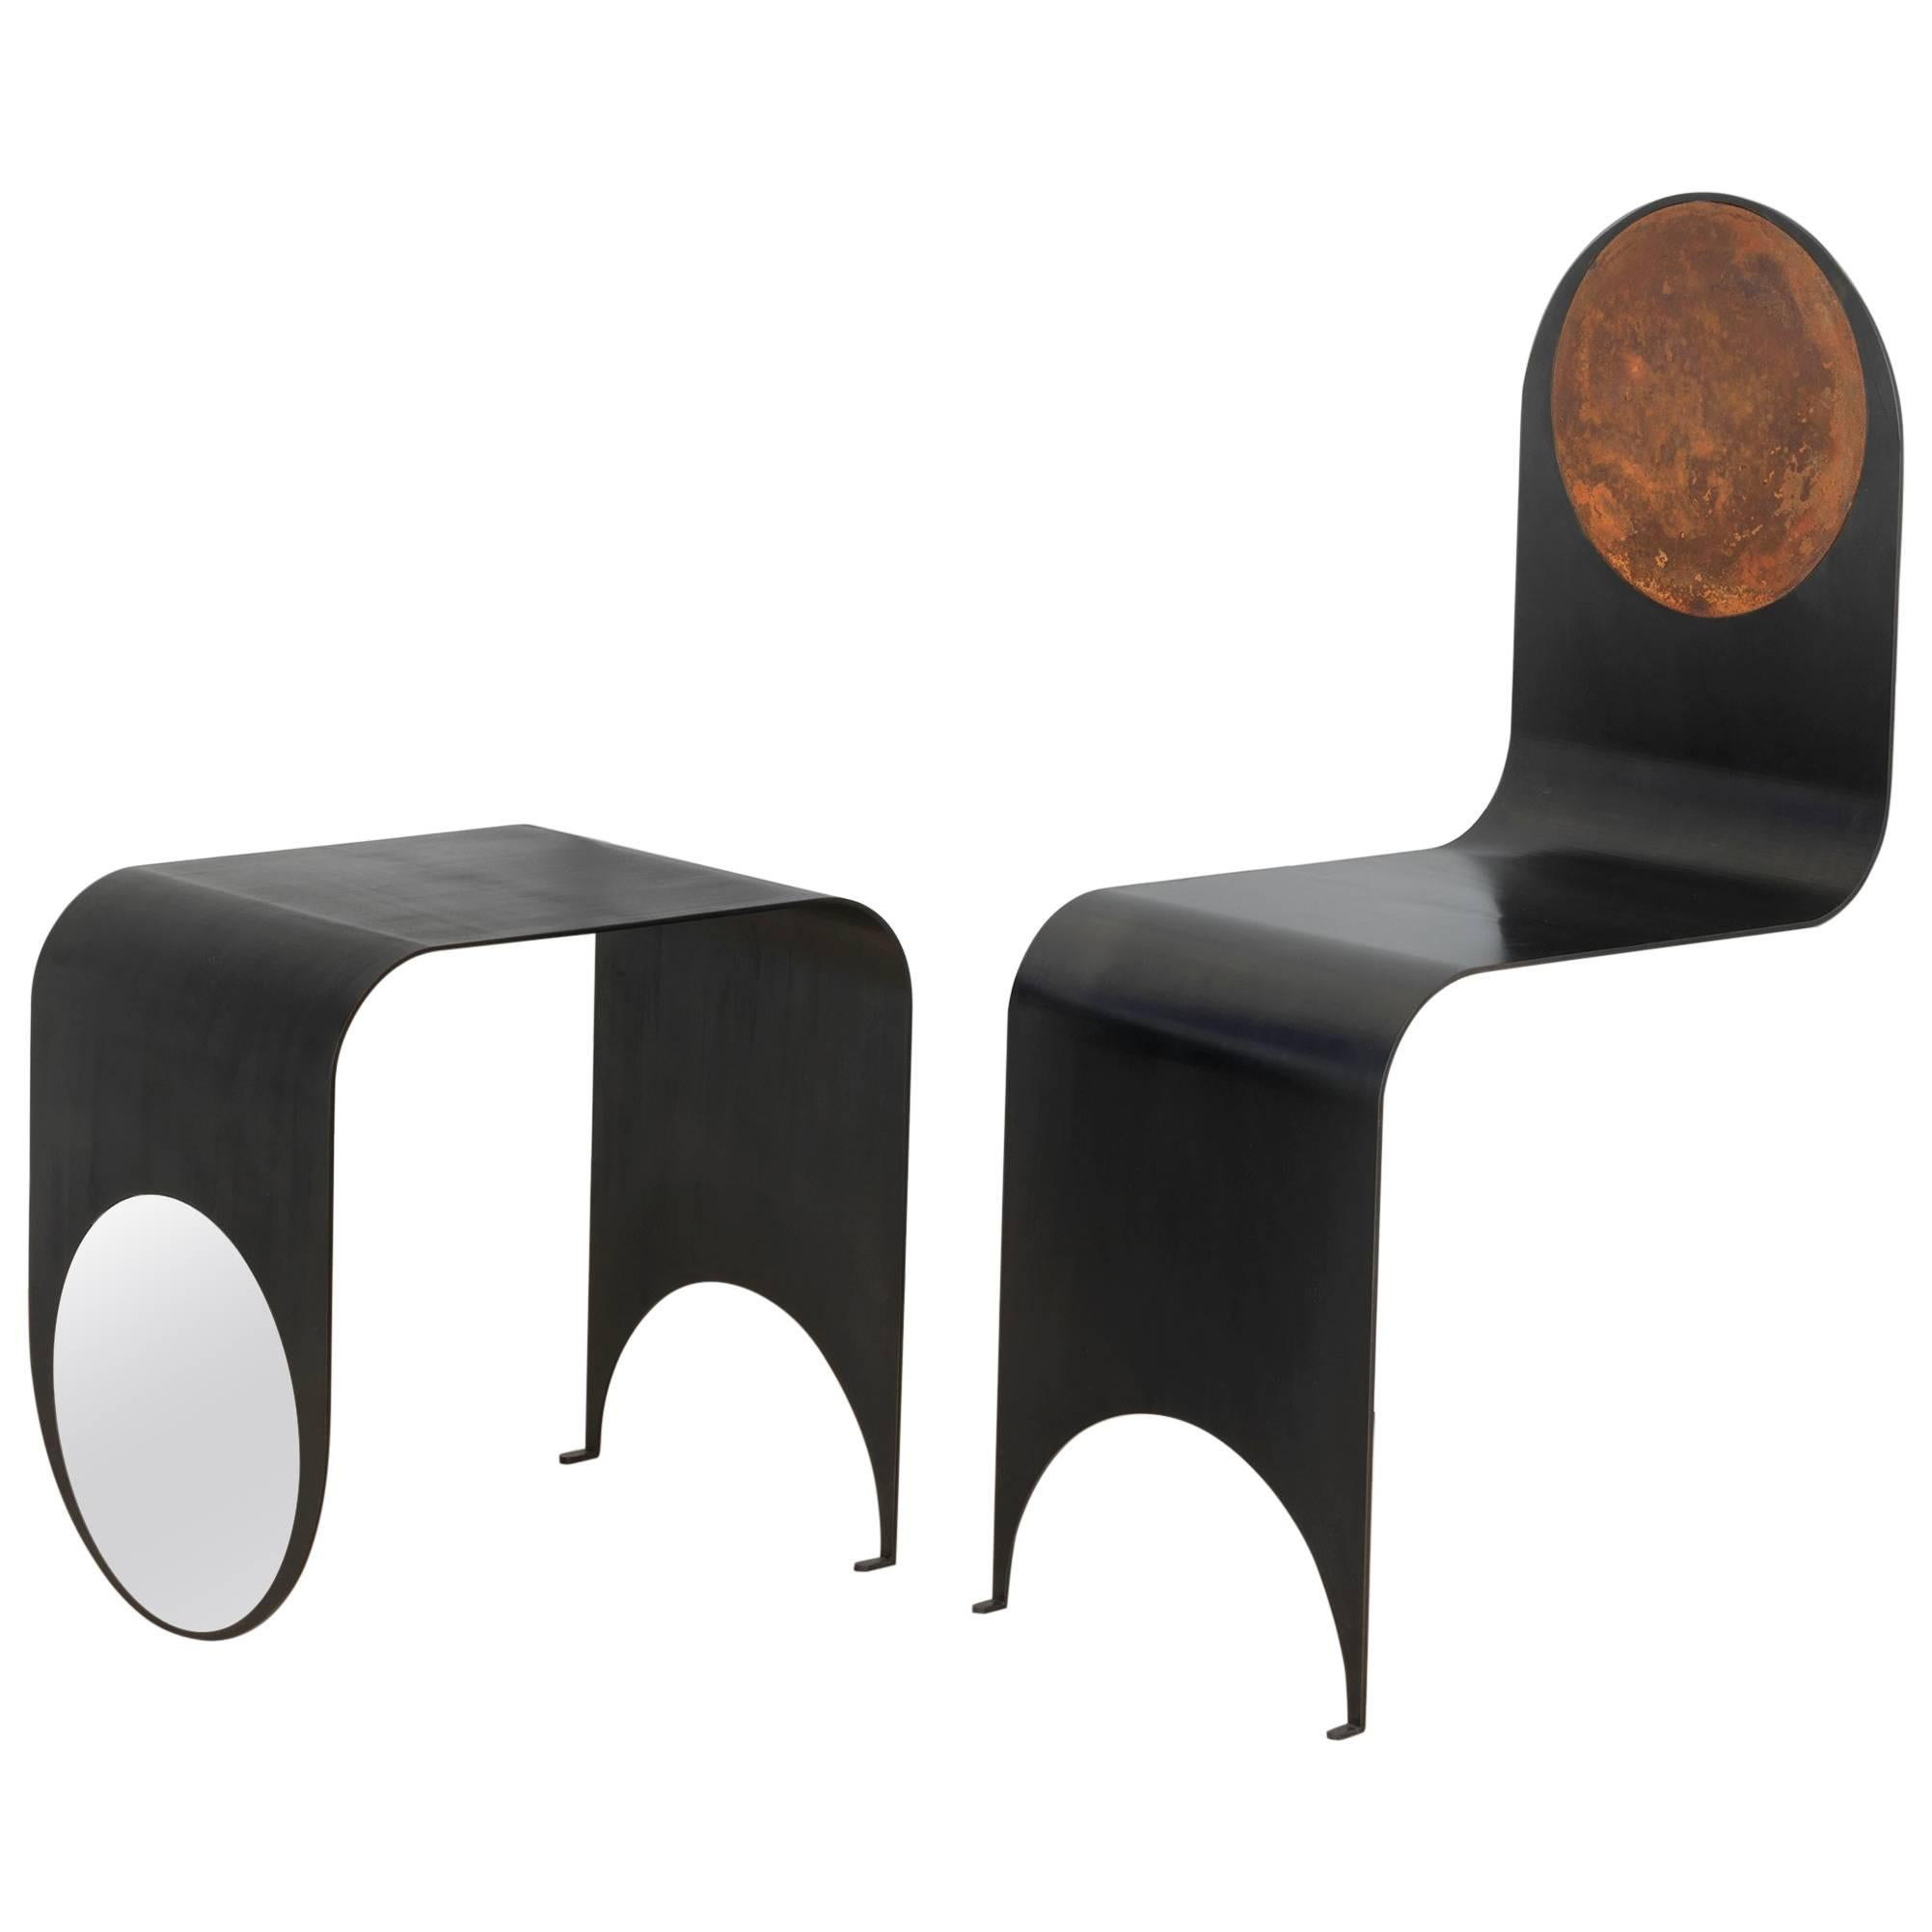 Thin Chair in Contemporary Blackened Steel and Oxidized Steel